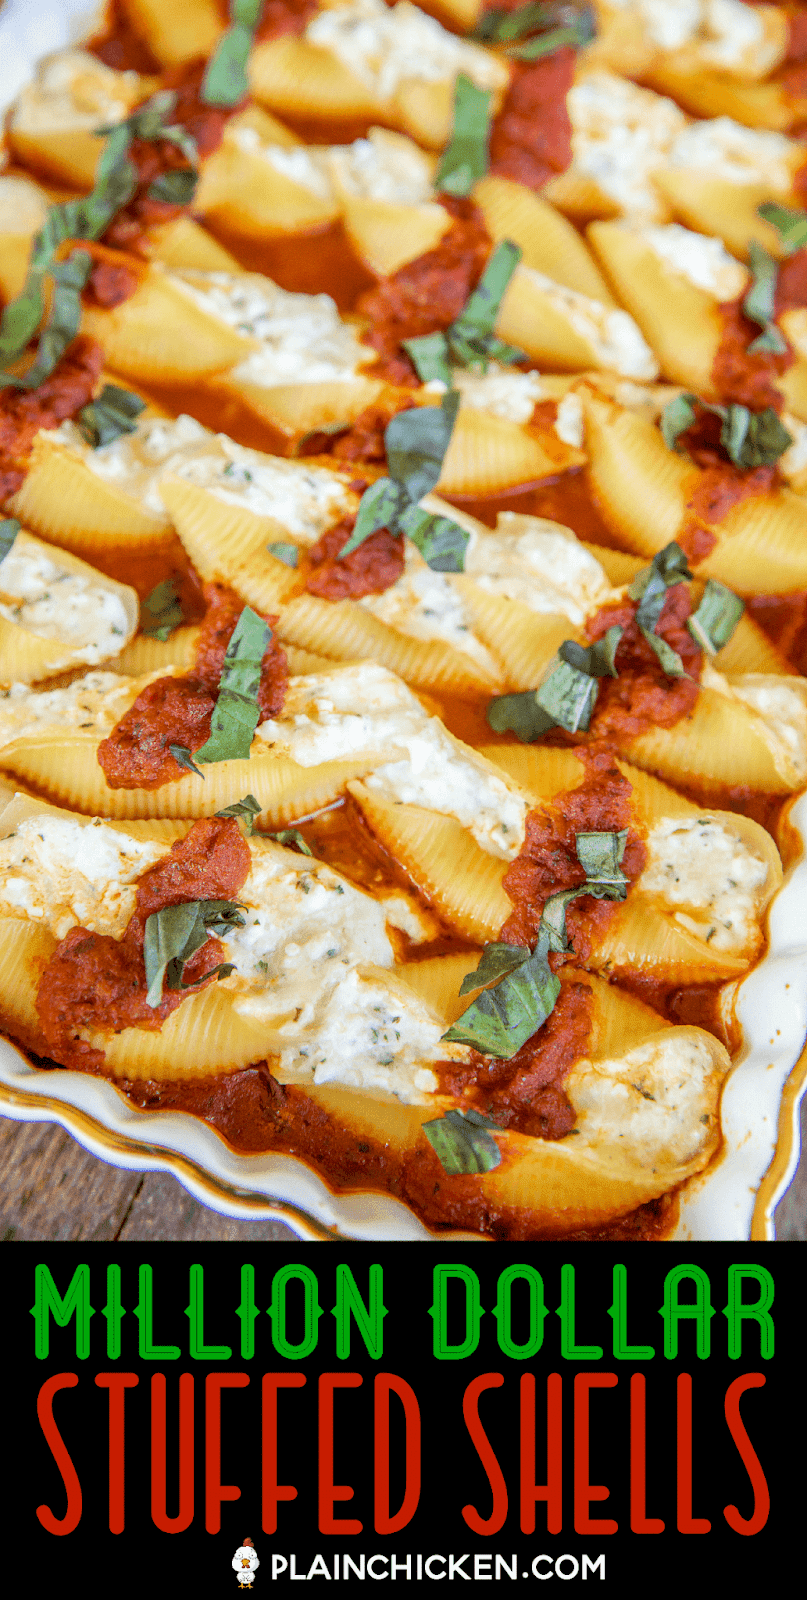 baked stuffed shells in a baking dish